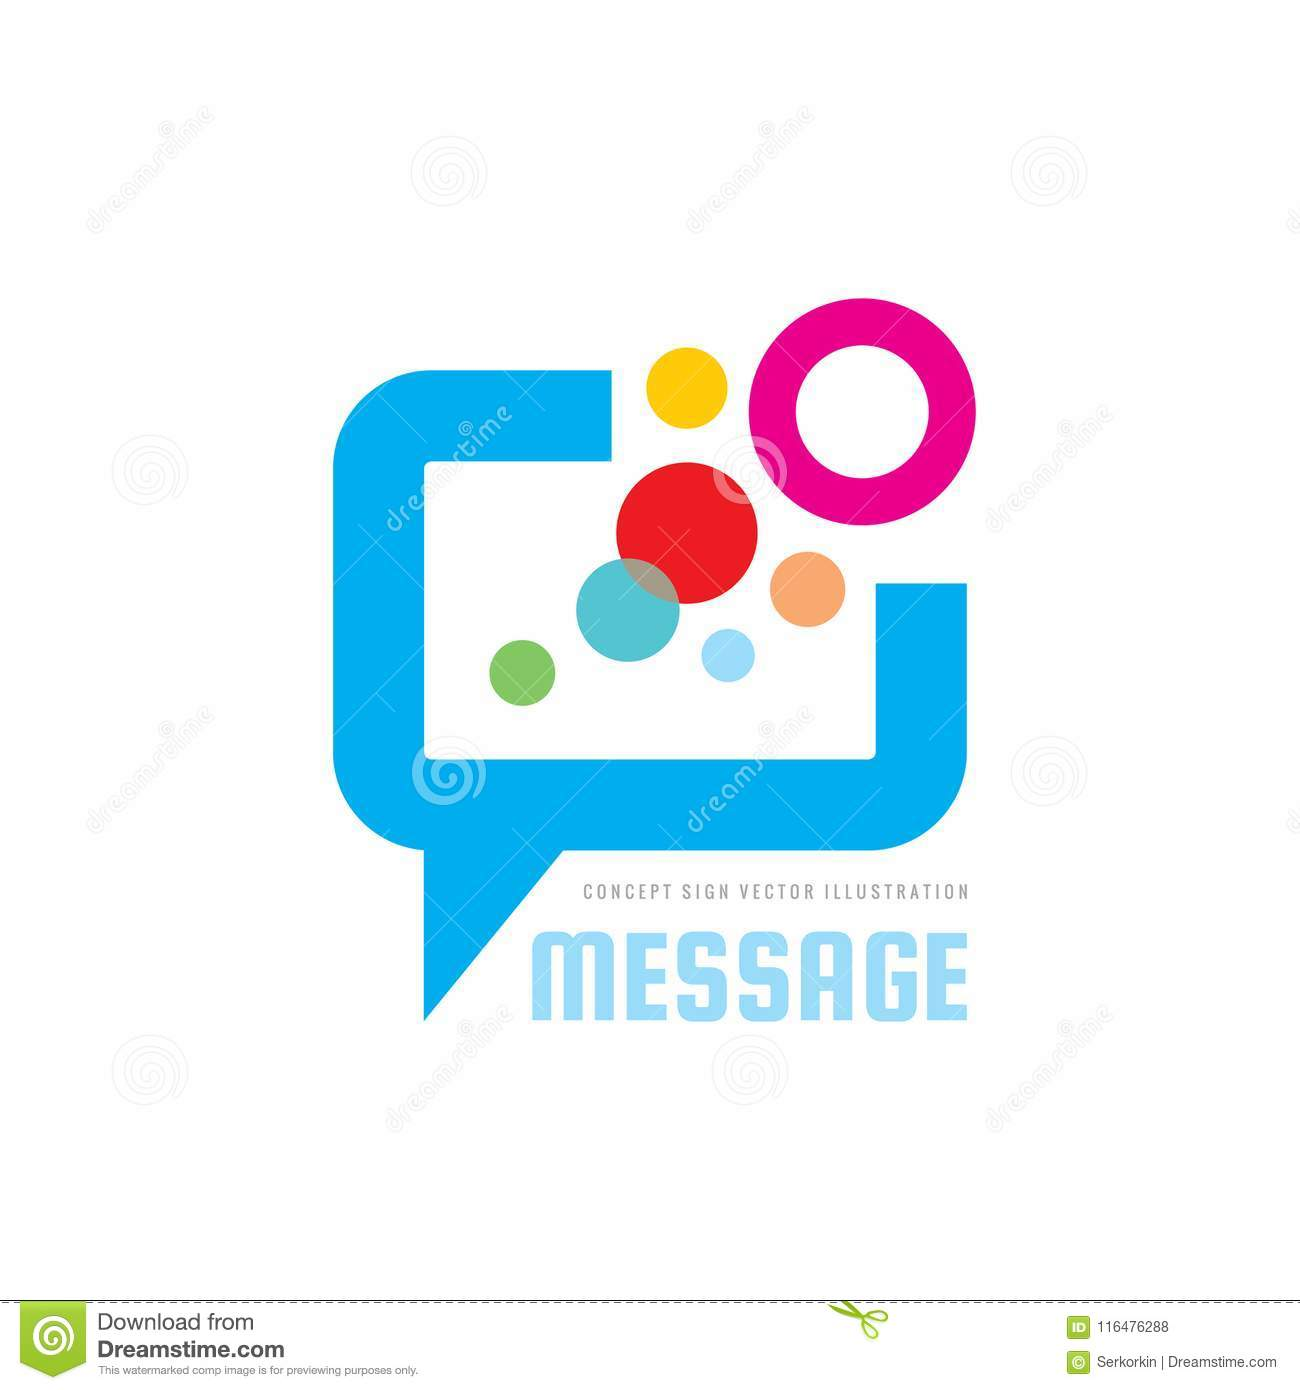 Message - speech bubbles vector logo concept illustration in flat style. Dialogue talking icon. Chat sign. Social media symbol.